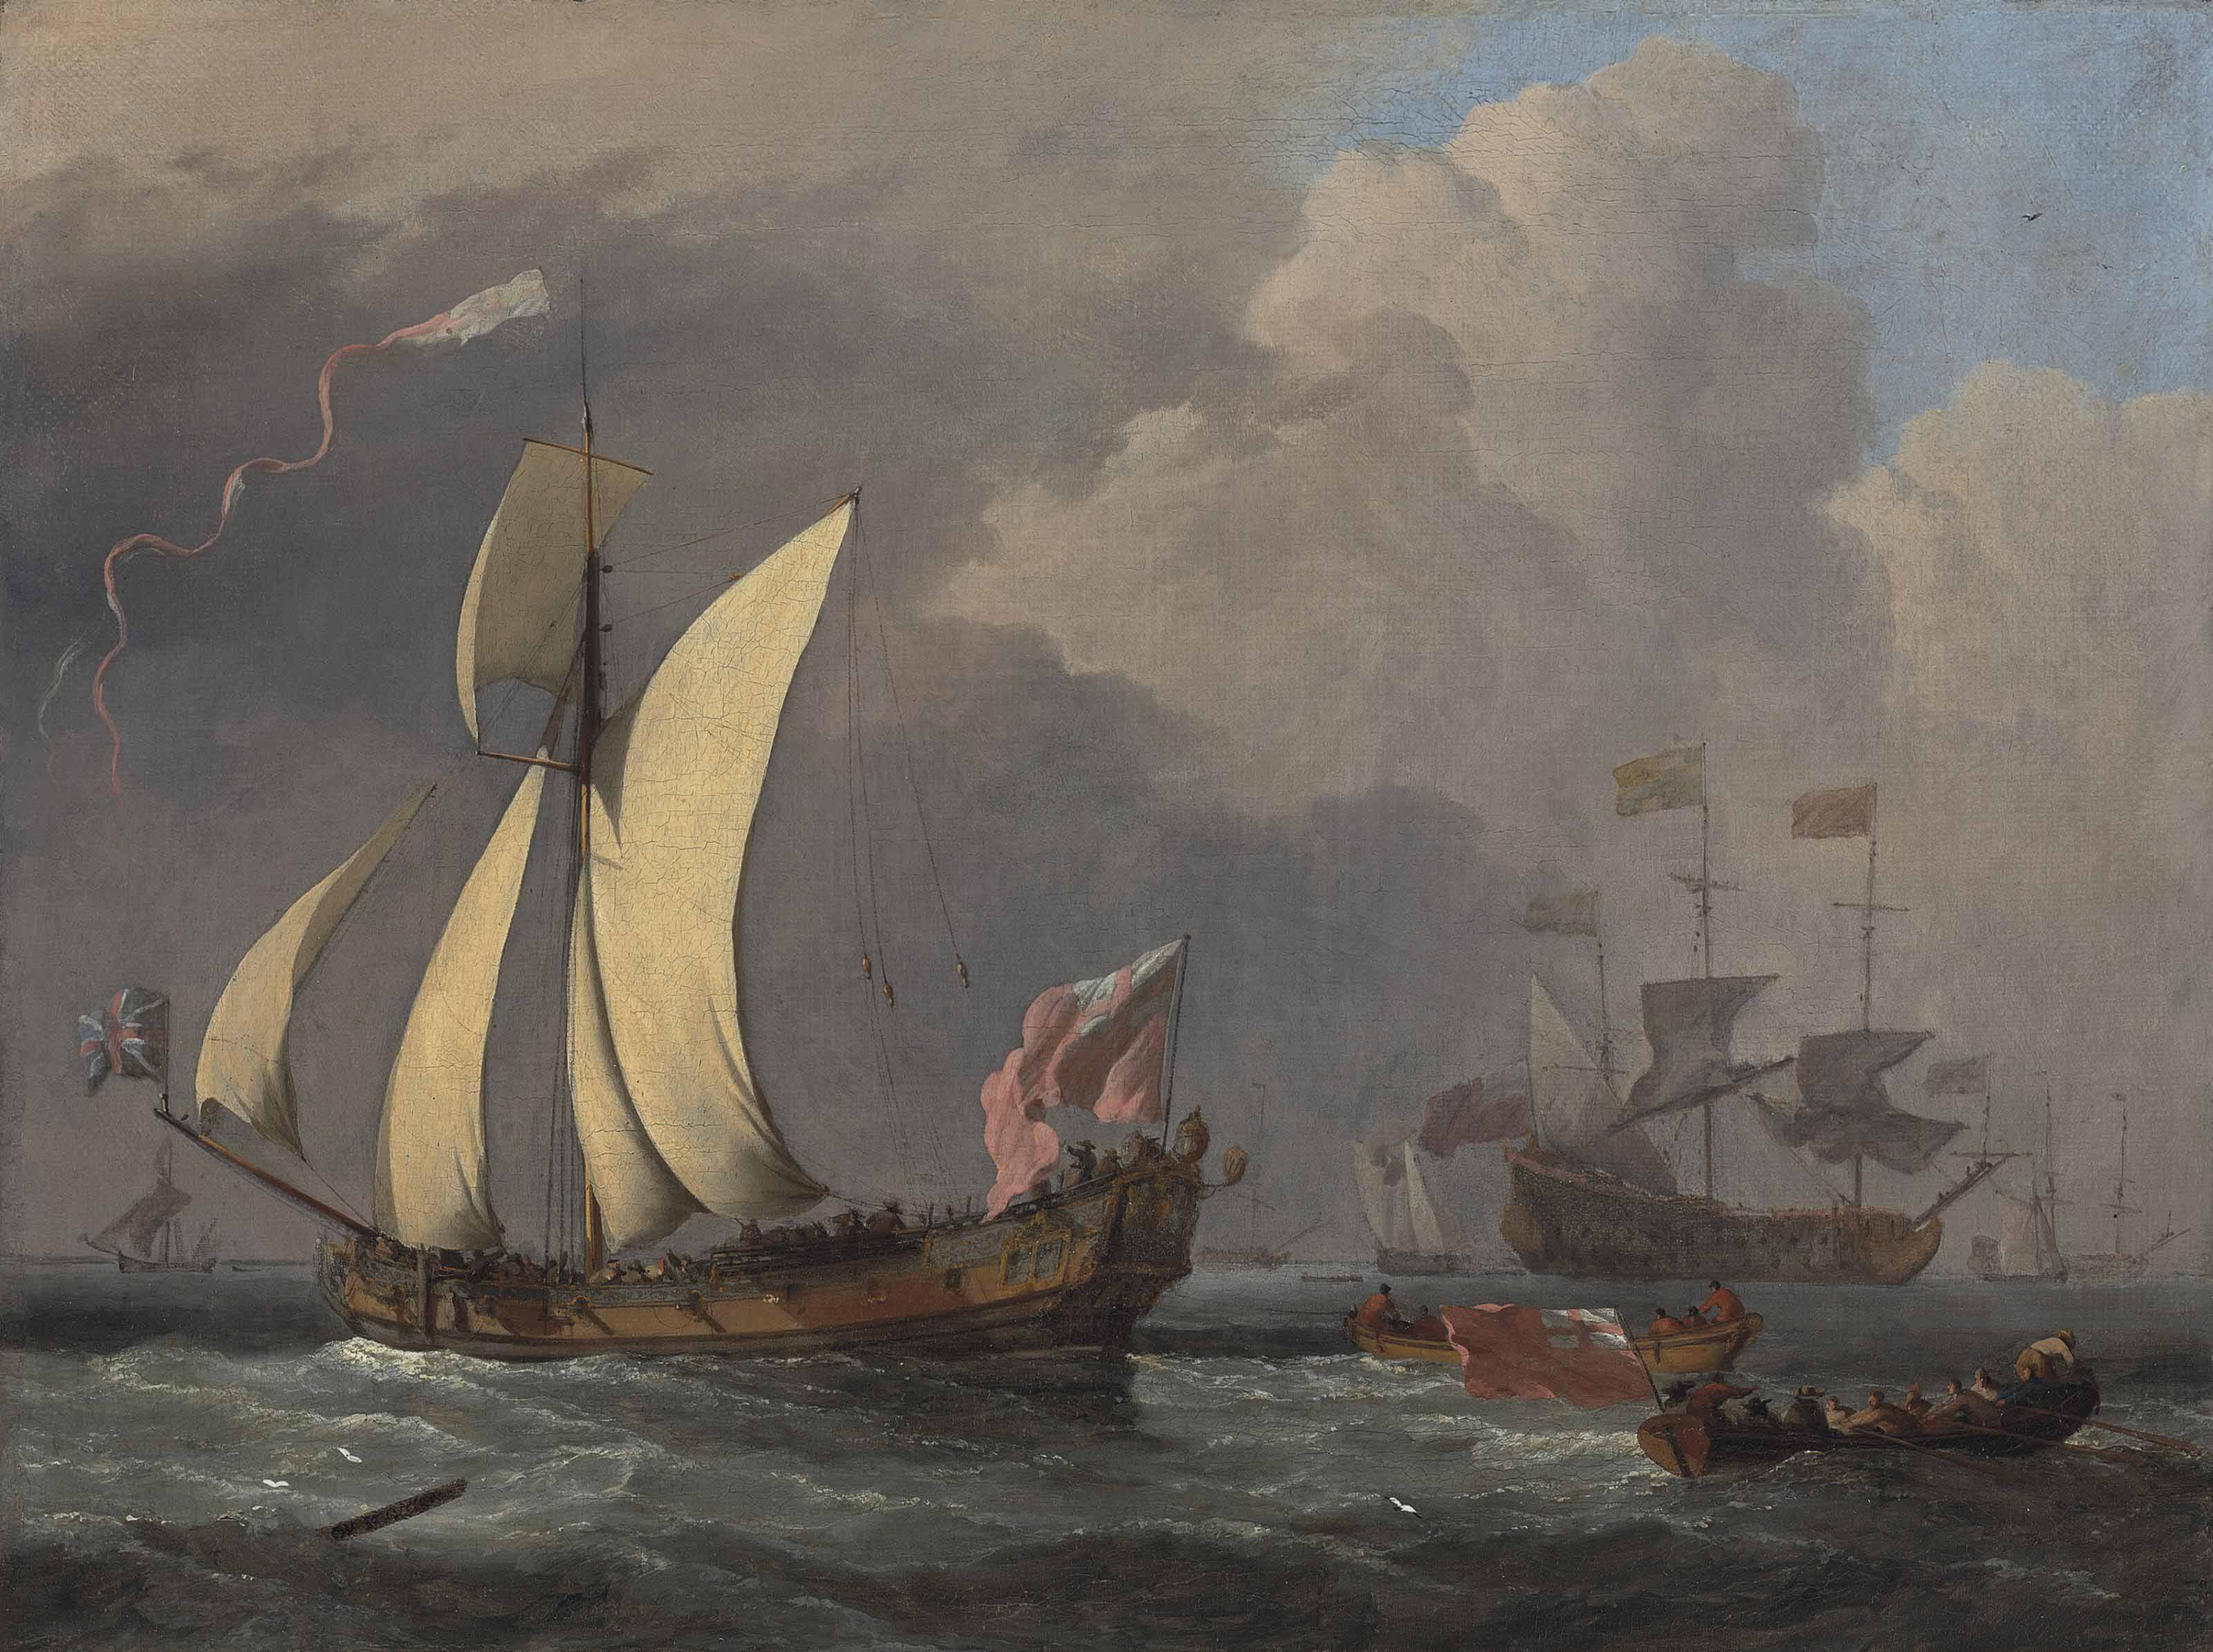 An English Royal Yacht, probably the Katherine, and a man-of-war beyond, probably the Harwich with Charles II aboard on his way to, or from Portsmouth in 1675, on the occasion of the Launch of the Royal James